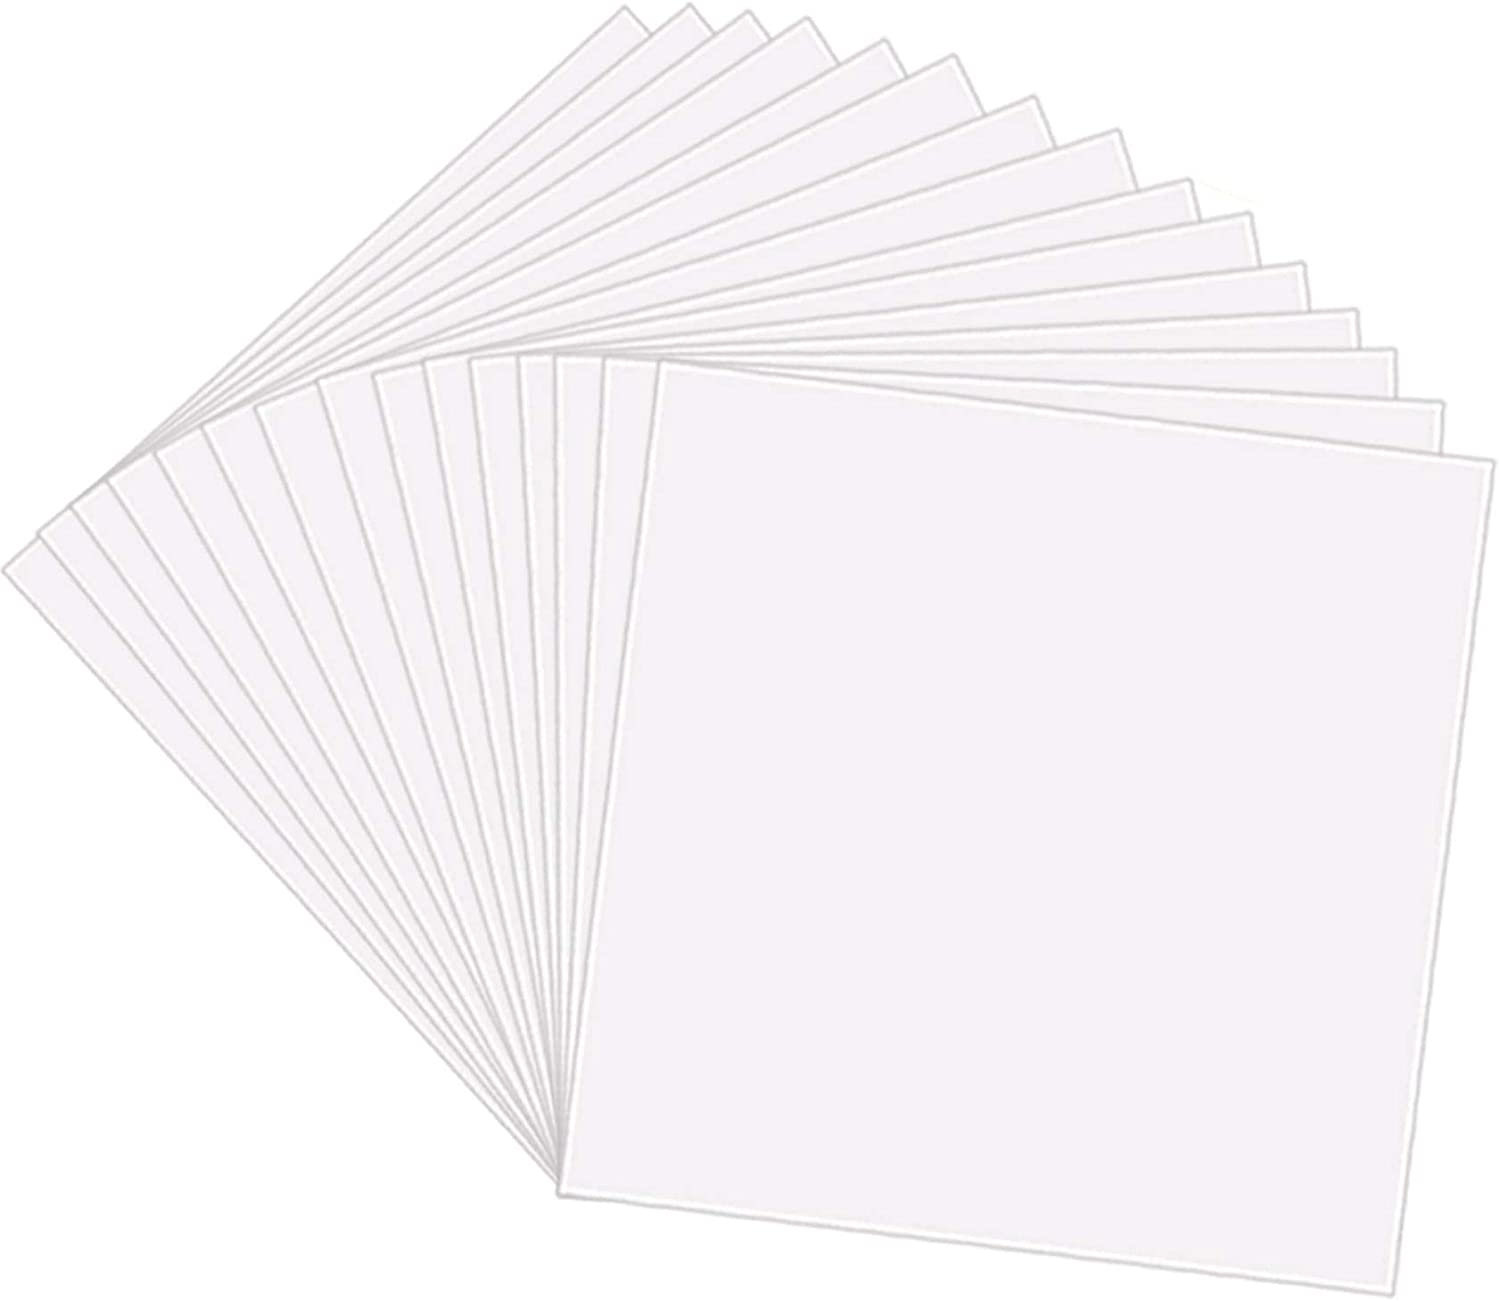 Vertically aligned 50  Stars Craft Stencil 7 mil Reusable Clear Mylar